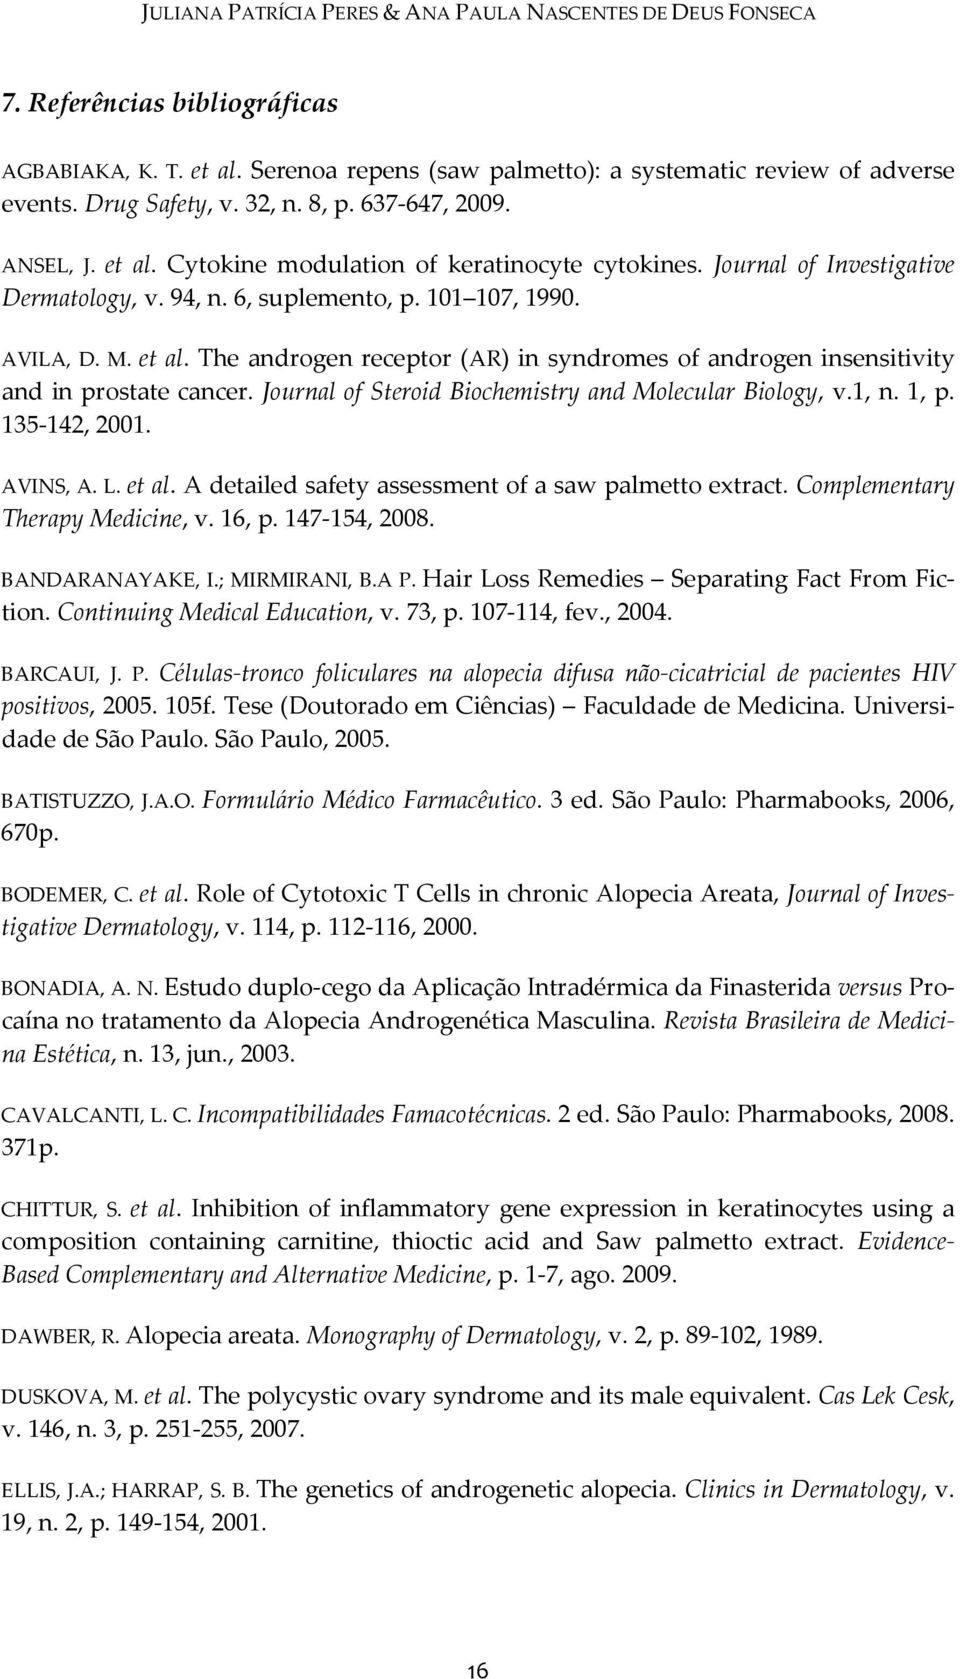 Journal of Steroid Biochemistry and Molecular Biology, v.1, n. 1, p. 135-142, 2001. AVINS, A. L. et al. A detailed safety assessment of a saw palmetto extract. Complementary Therapy Medicine, v.